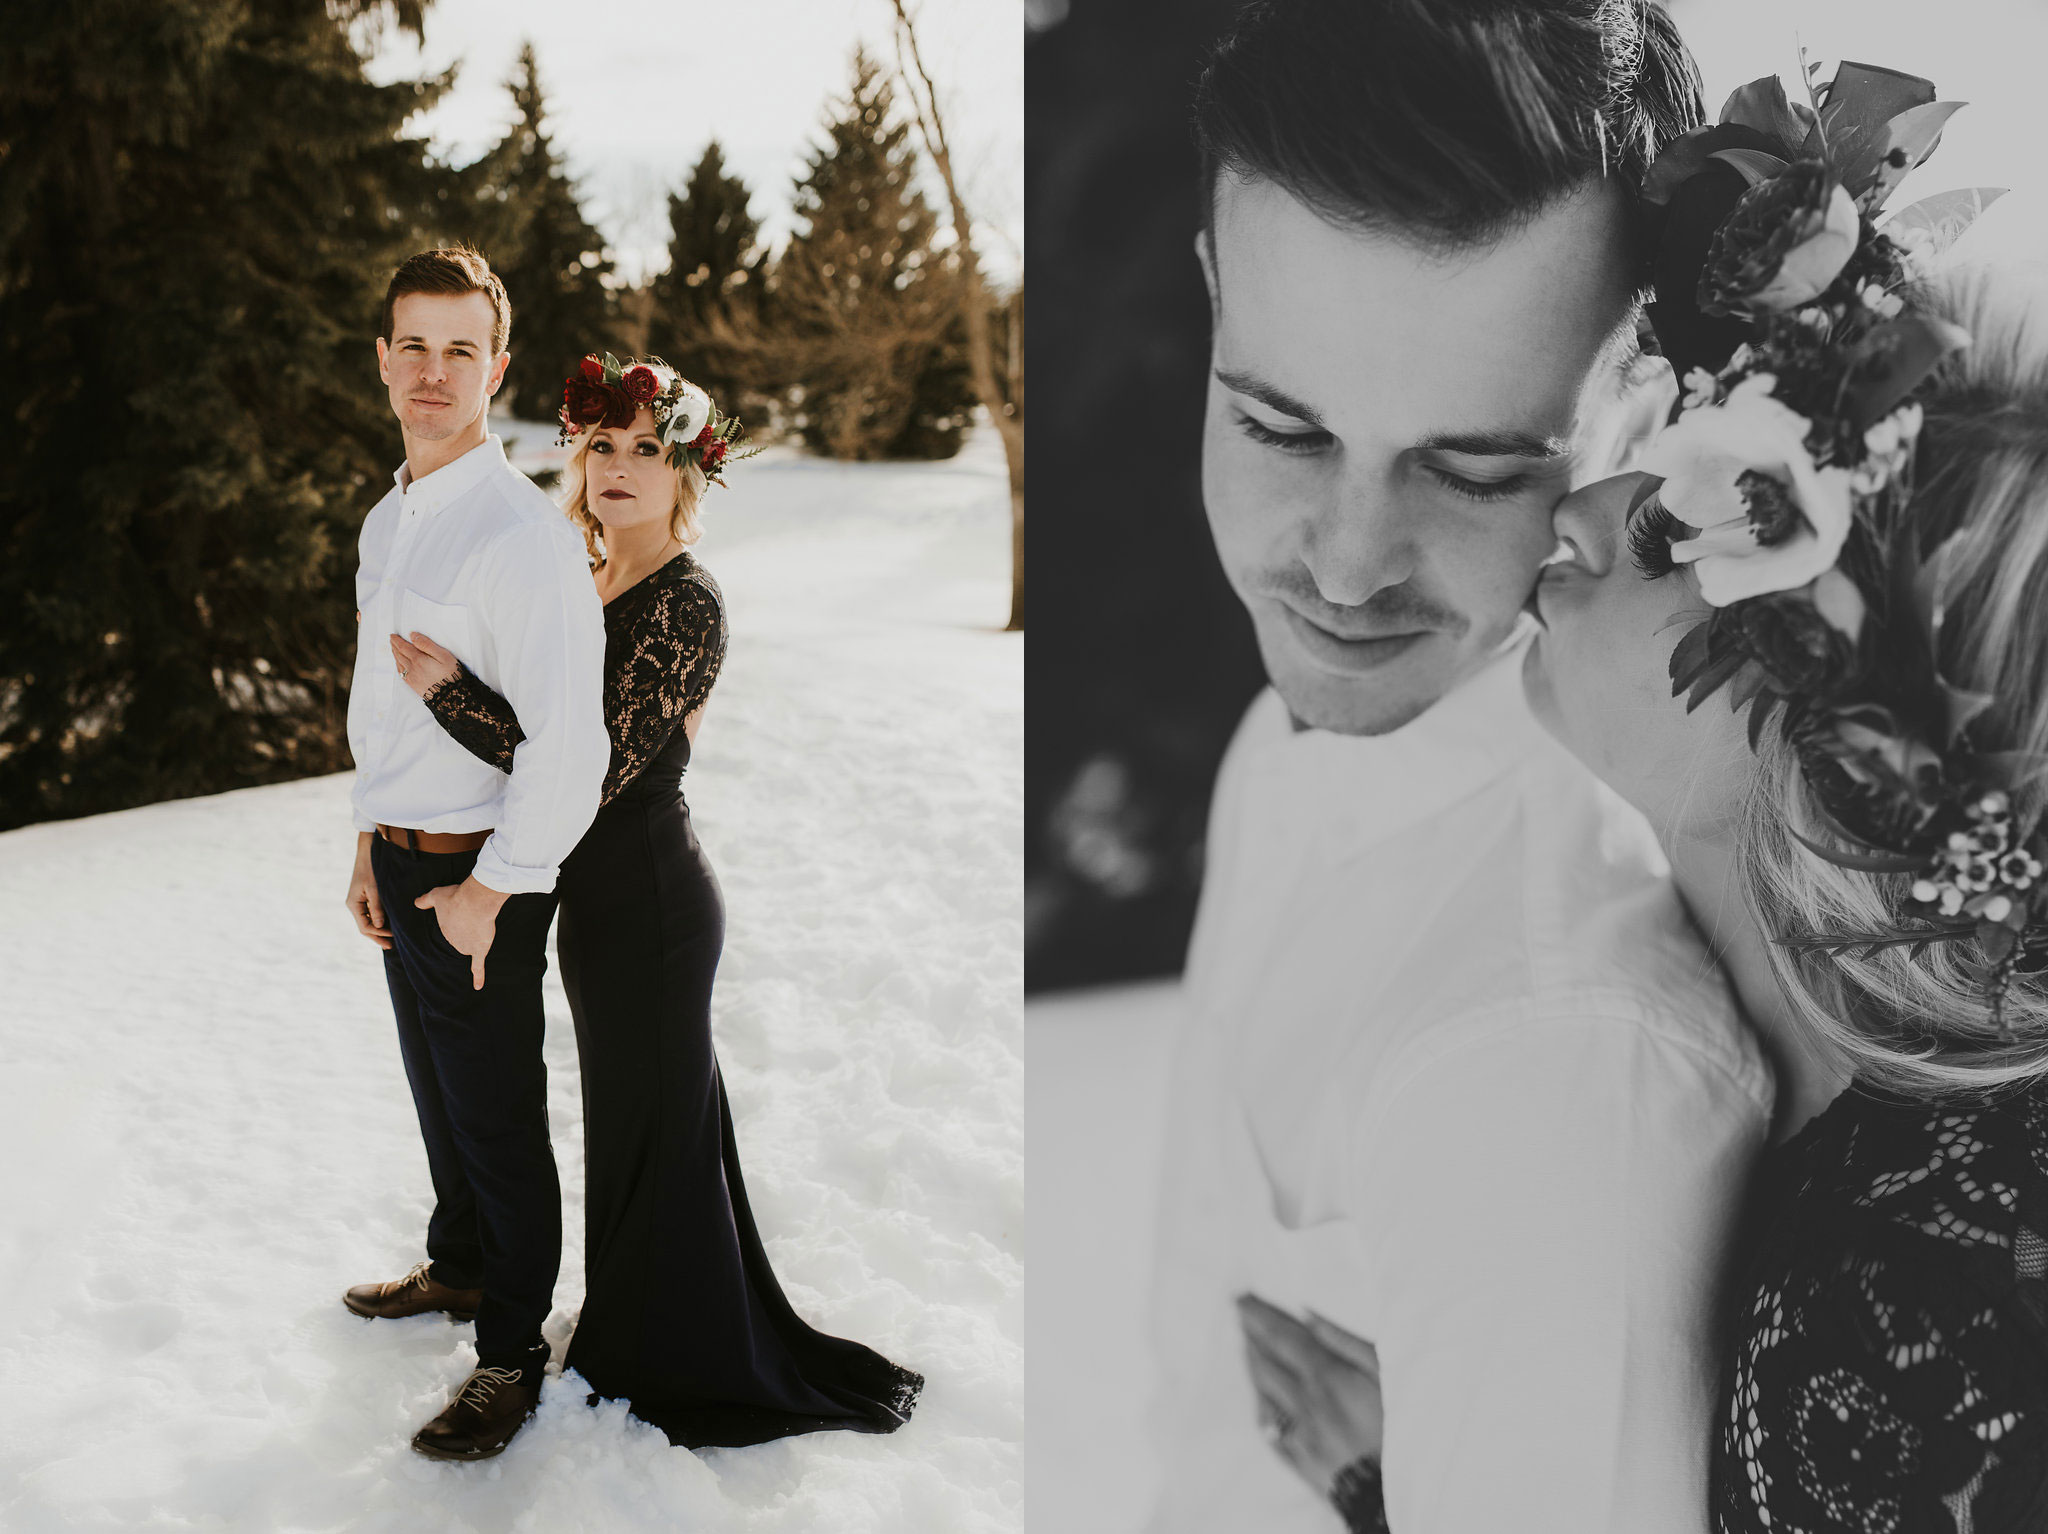 winter-wedding-minnesota-photographer-1.jpg